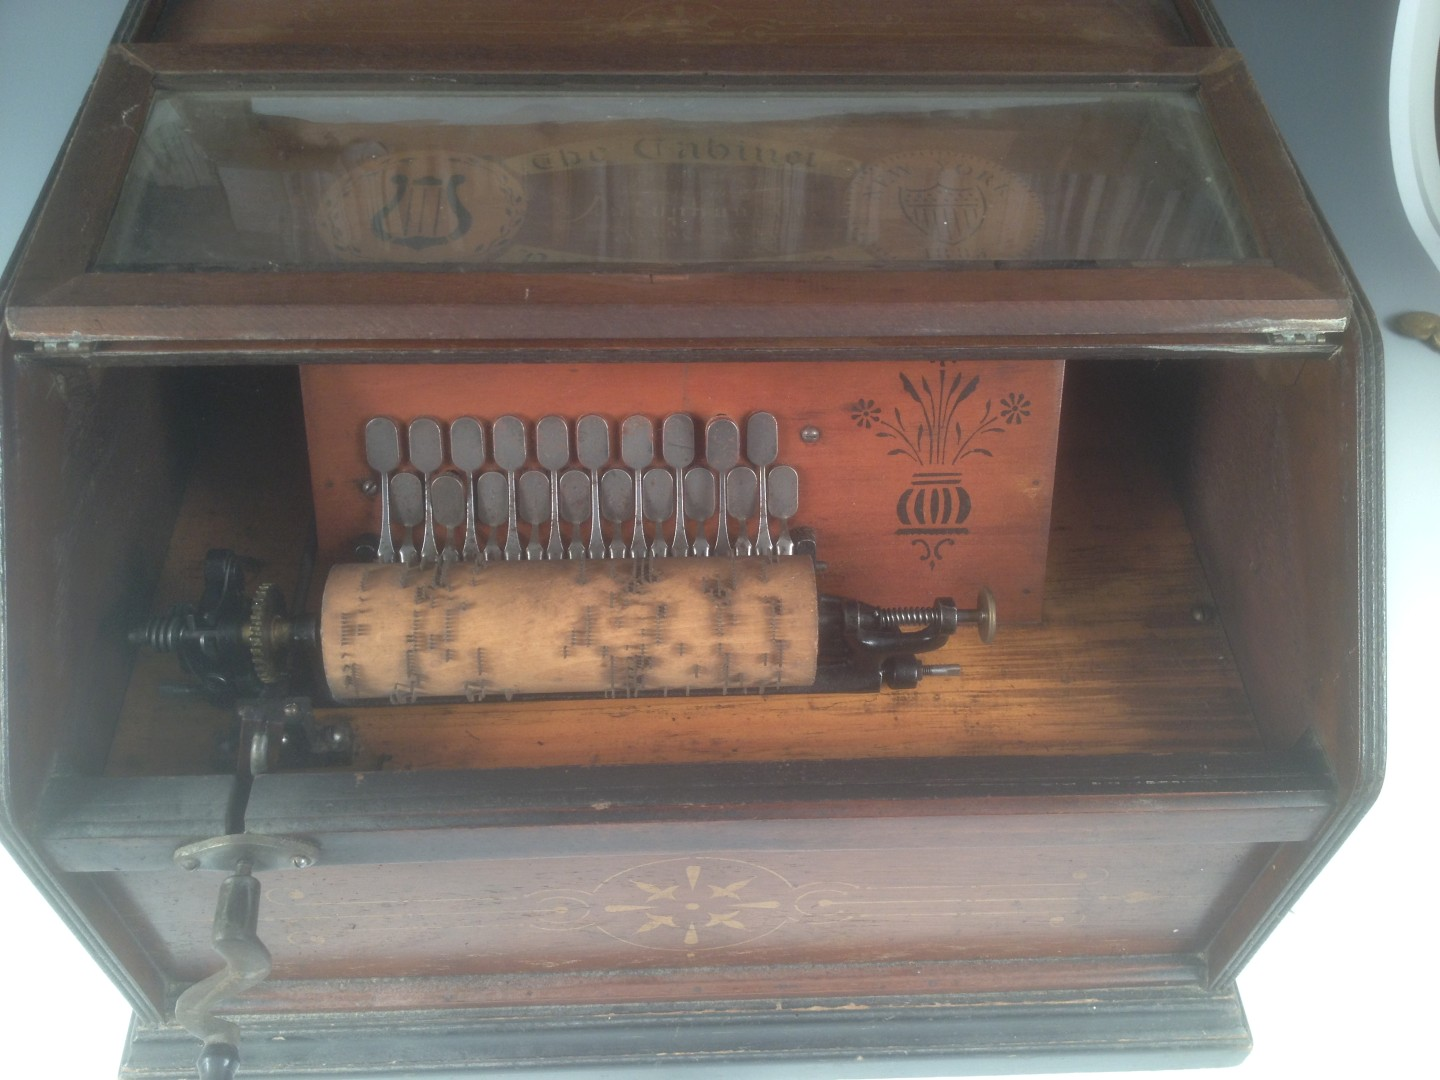 Lot 670 - The Cabinet Roller Organ' by 'Autophone, Ithaca, NY' and seventeen wooden cylinders, the rectangular